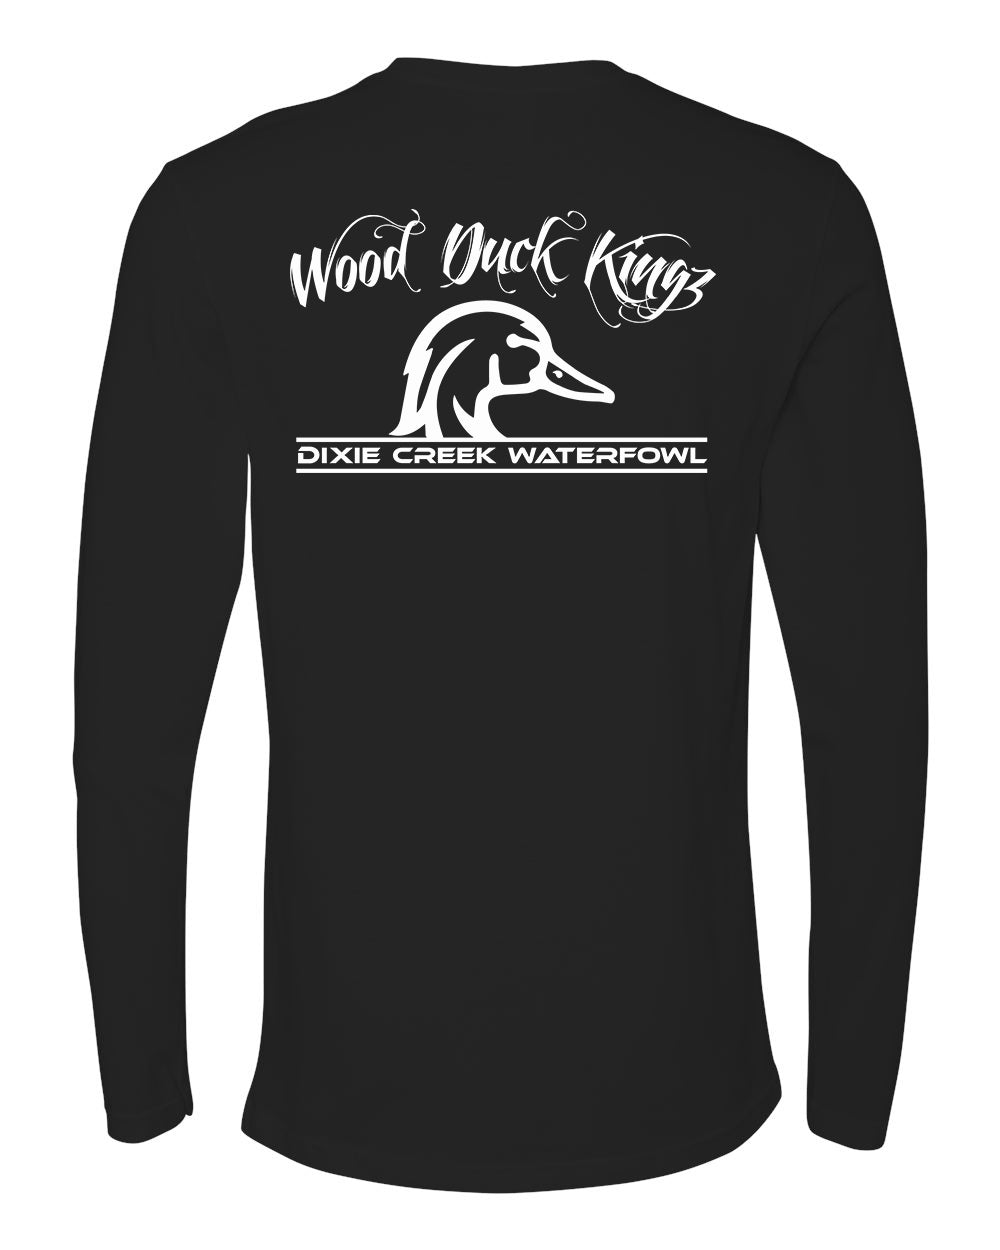 Wood Duck Kings - Long Sleeve White Print